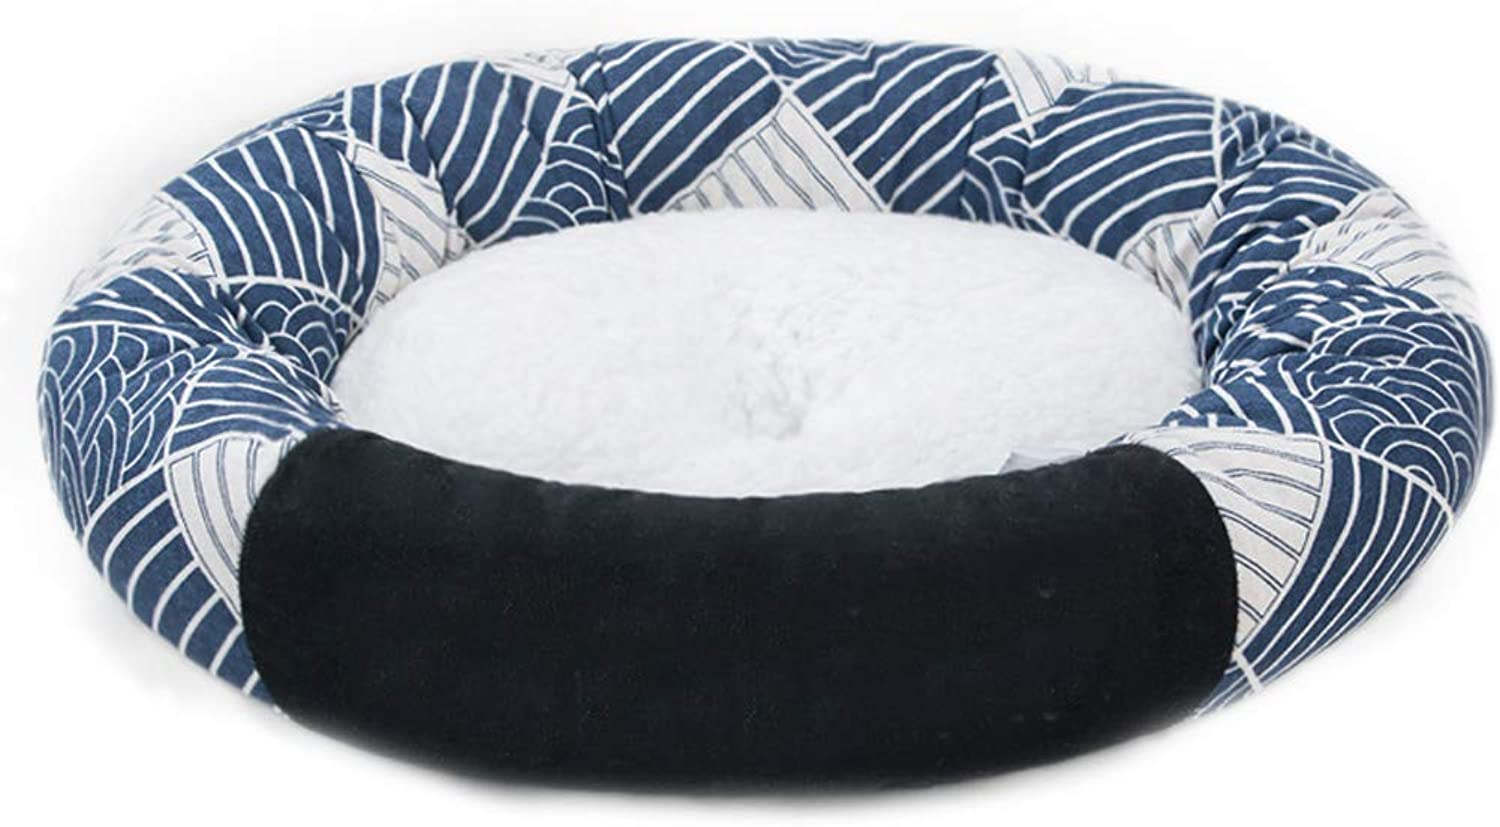 Printed Figure Pet Nest Printing And Wind Four Seasons Universal Round Small Velvet Dog Cat Litter Bed Villa Warm 3 Optional MUMUJIN (color   Checkered pattern, Size   S)